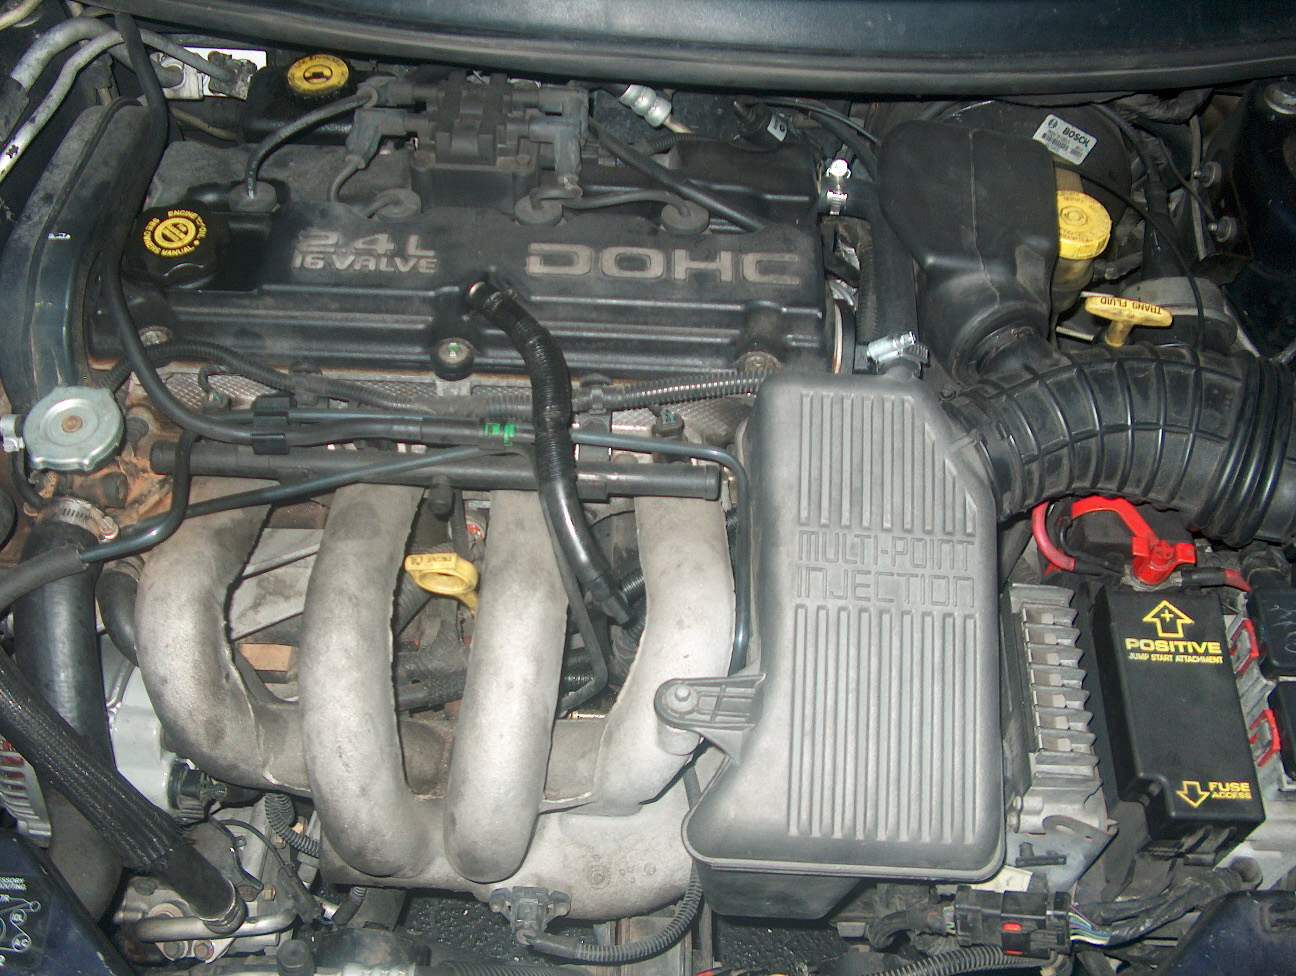 Chevy 5 3 Vortec Engine Diagram also 258un 99 Suburban Tail Lights Dont Work Others Work Fine together with 95 Dodge Ram Wiring Diagram as well EFI 20Swap 20  20Wiring likewise Porsche Boxster Fuse Box Location. on 1998 jeep cherokee o2 sensor location